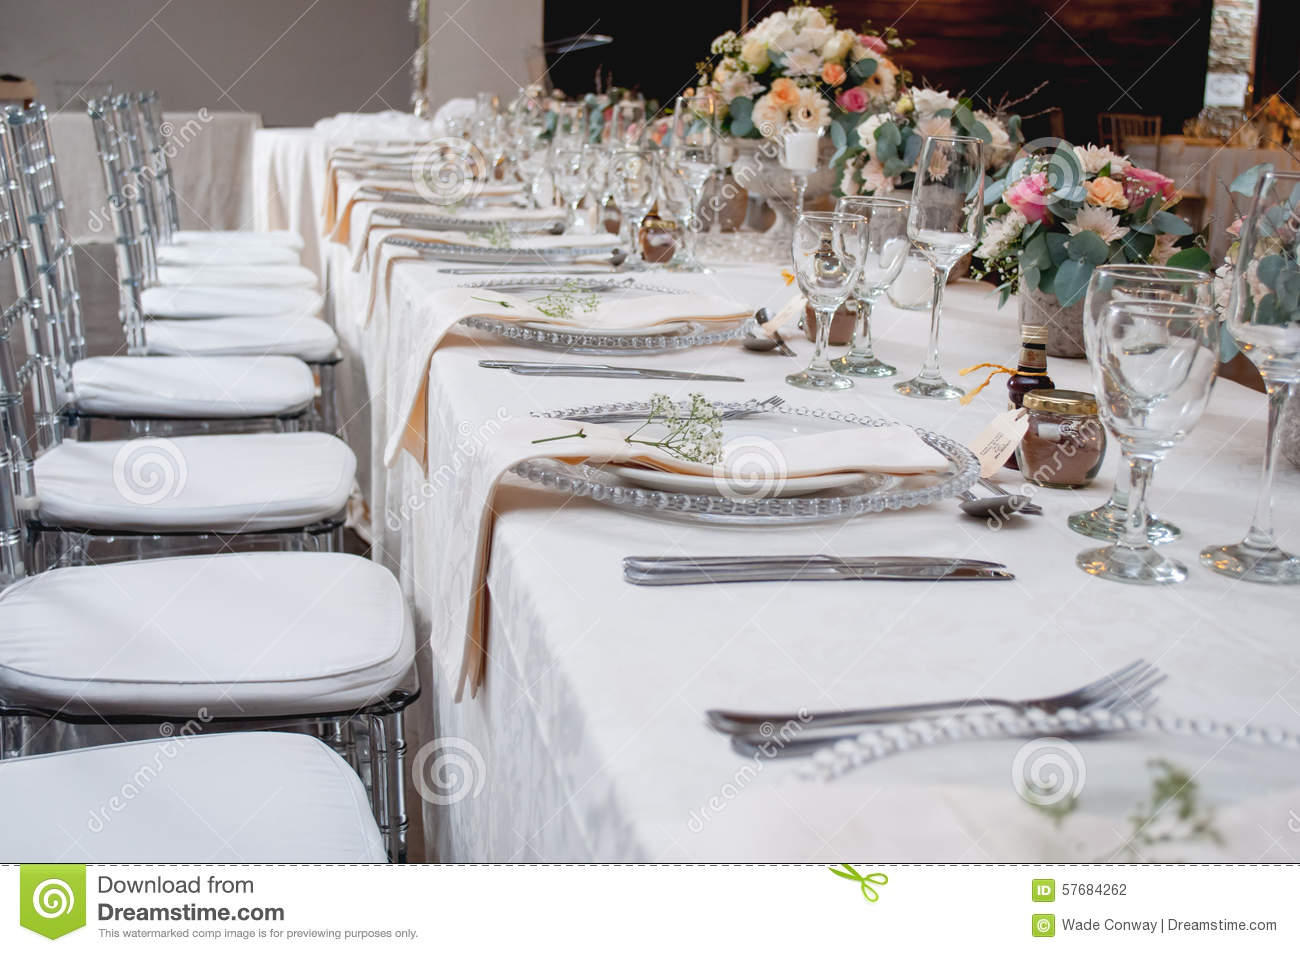 Wedding Decor At Main Table Stock Photo Image Of White Silver